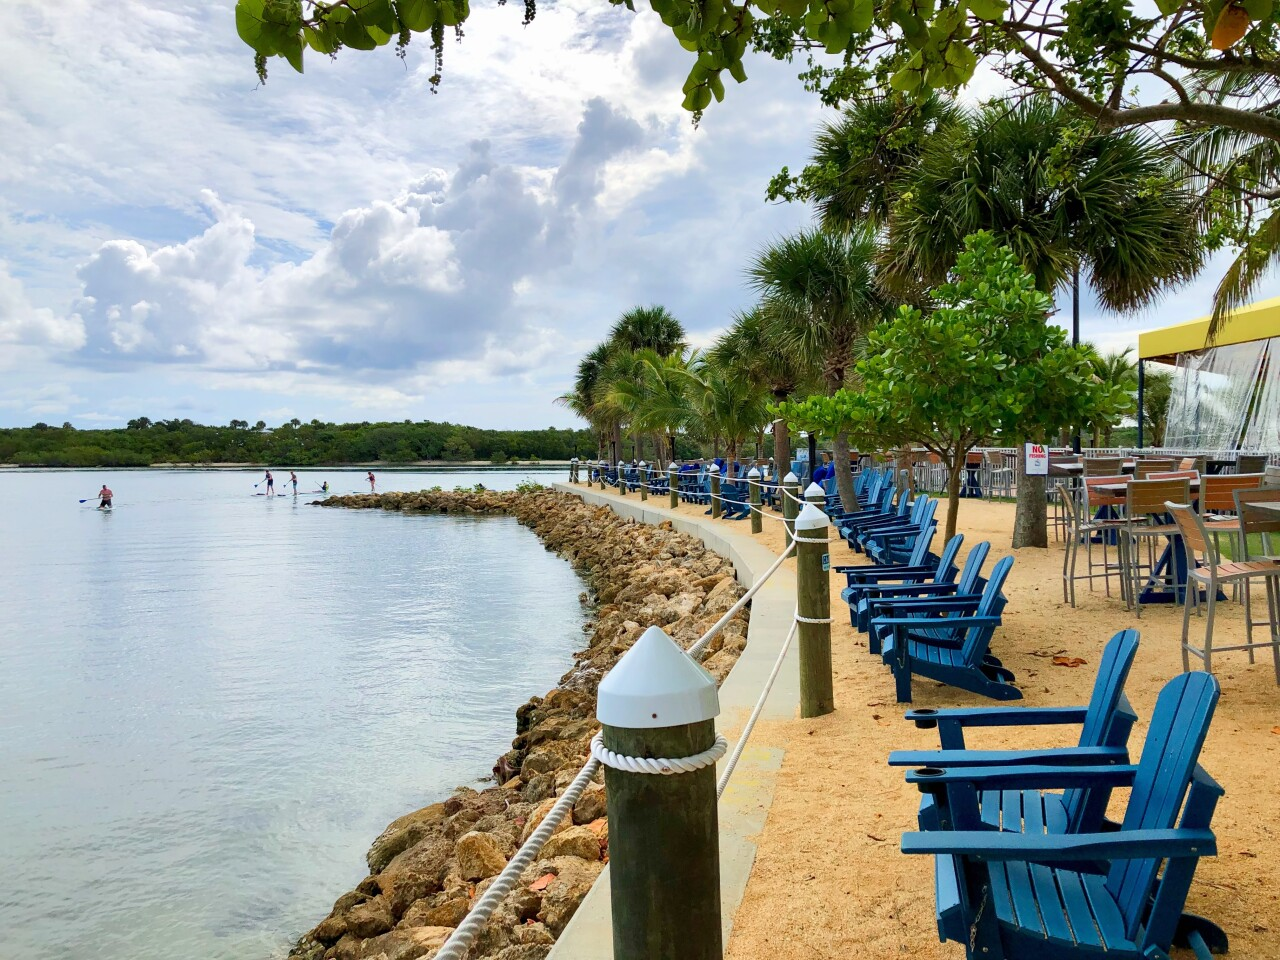 Blue lawn chairs overlooking water